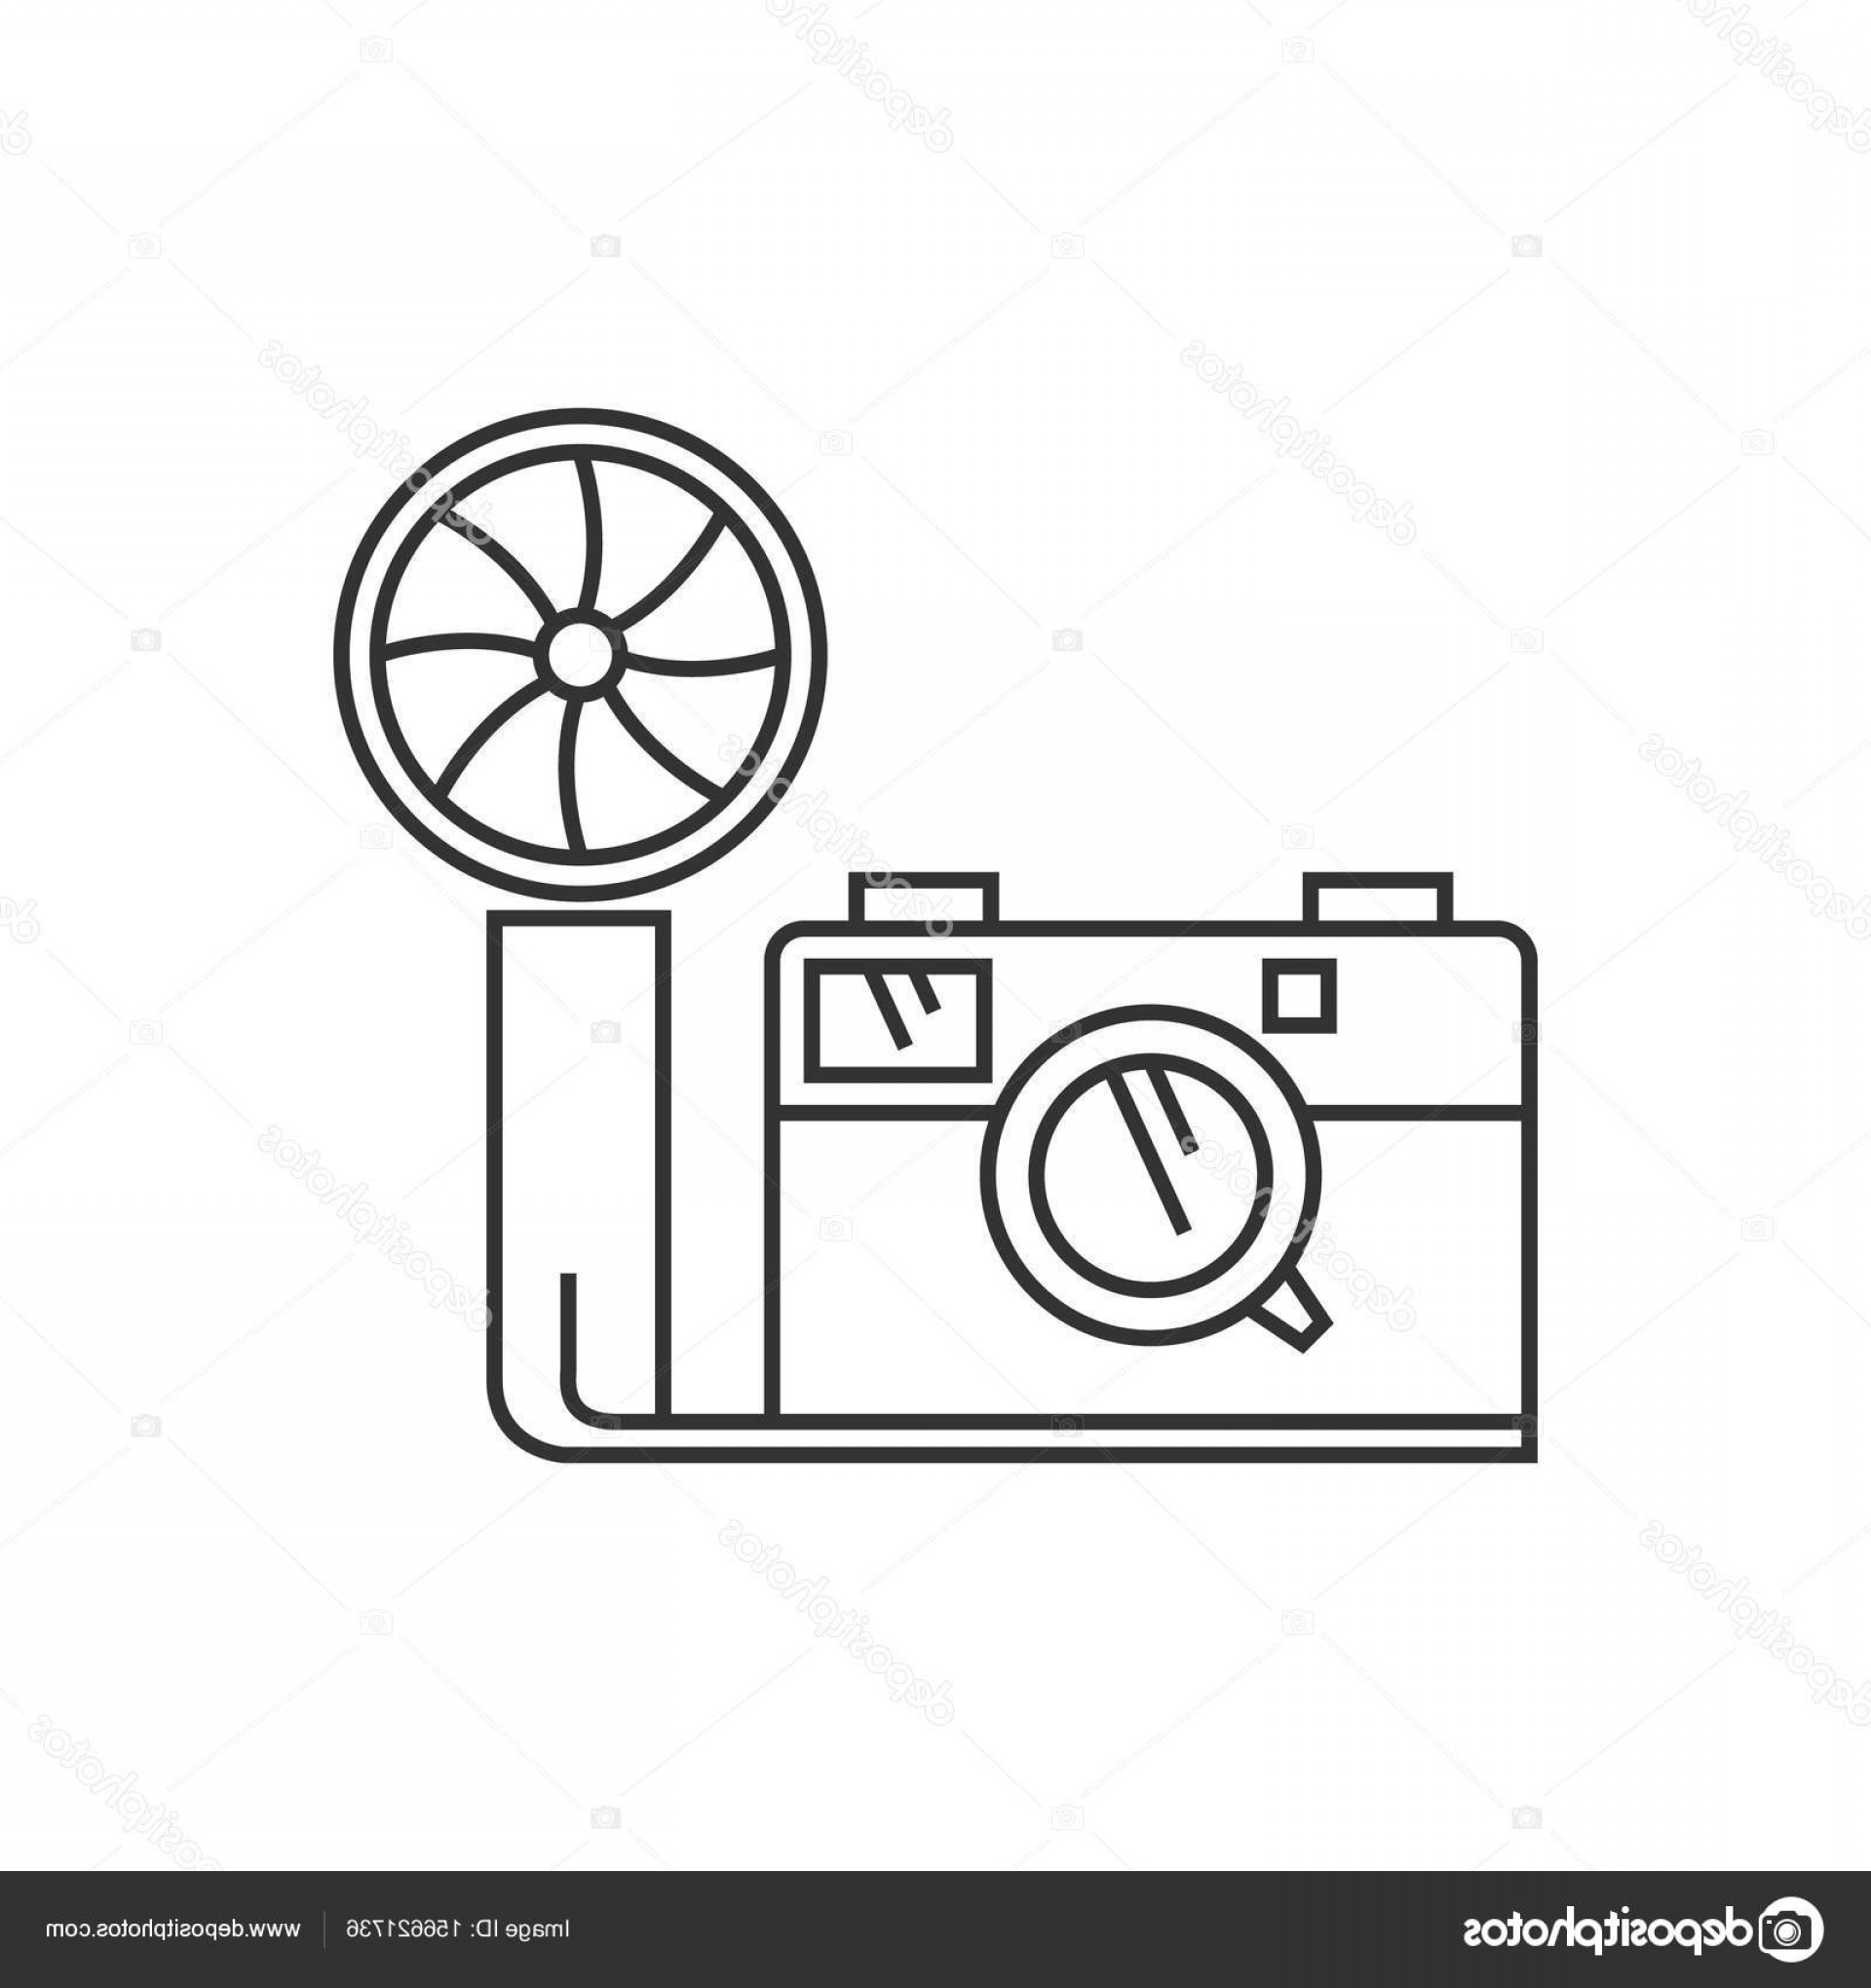 Camera Outline Vector Graphic: Stock Illustration Outline Icon Vintage Camera